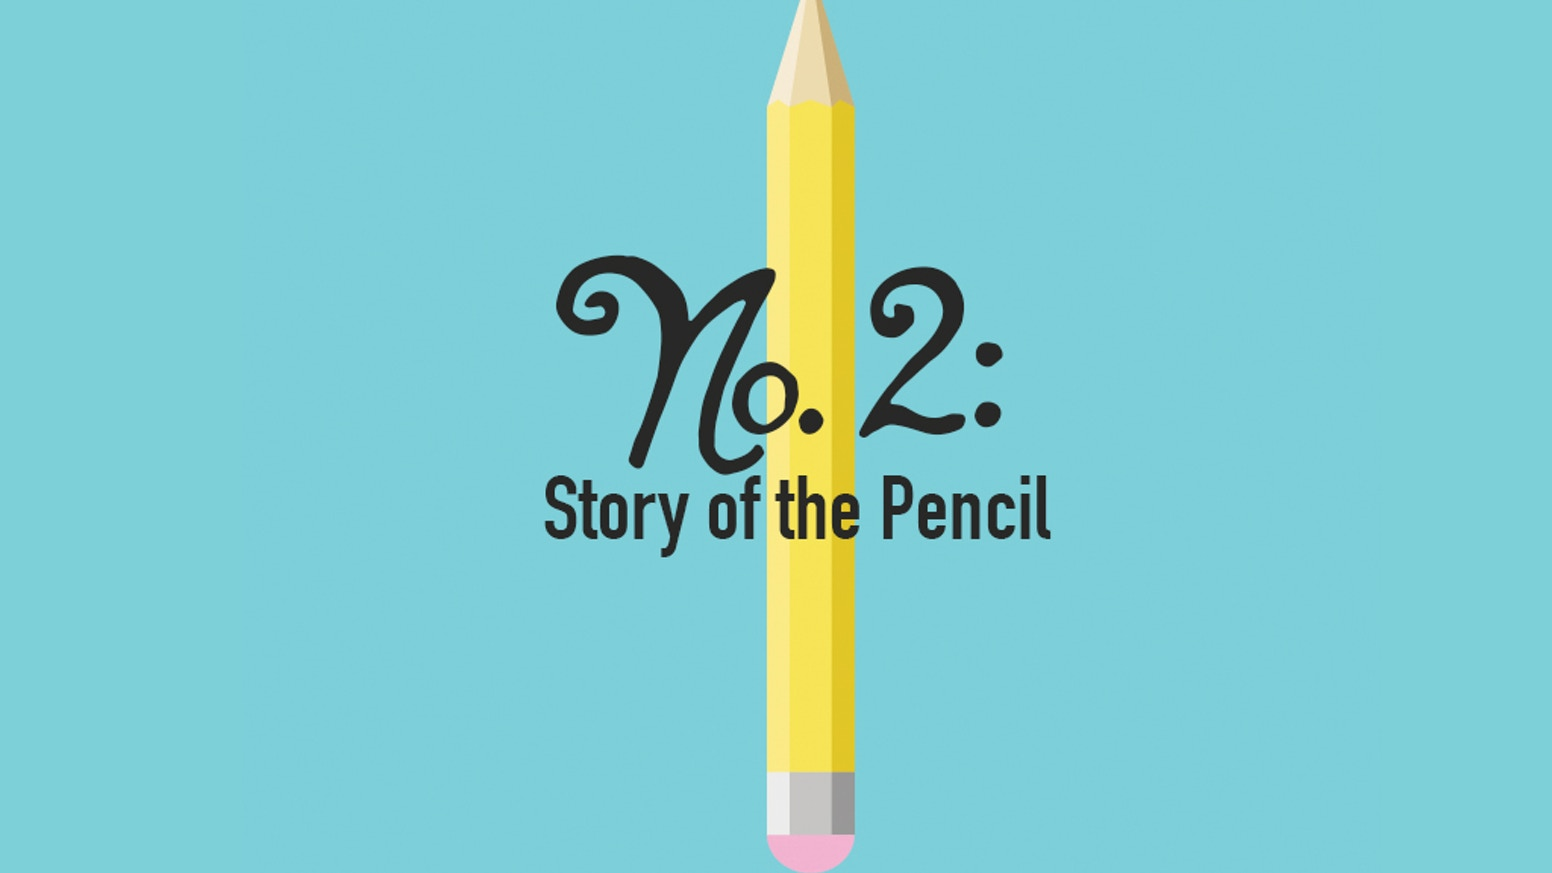 No. 2, overlooked as a common tool, continues to lose dominance in our media-saturated world. The pencil needs to be honored.